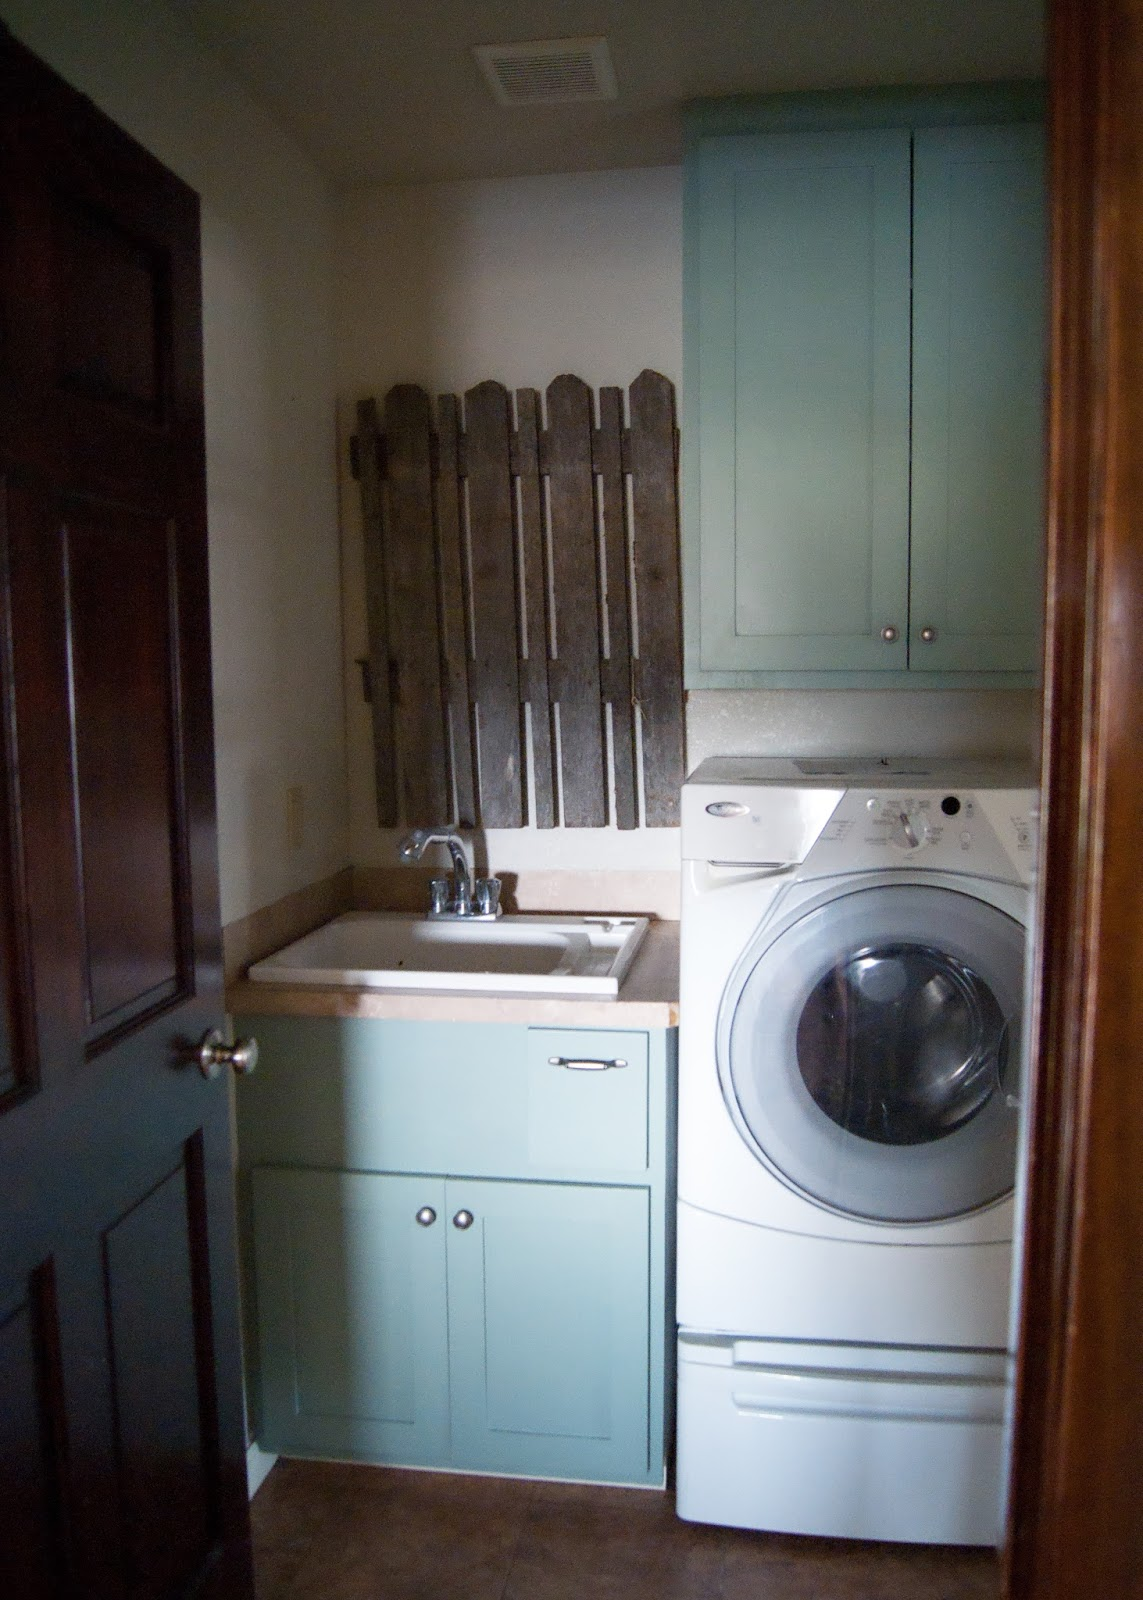 Laundry Room Makeover - After - Green blue cabinets and old fence decor